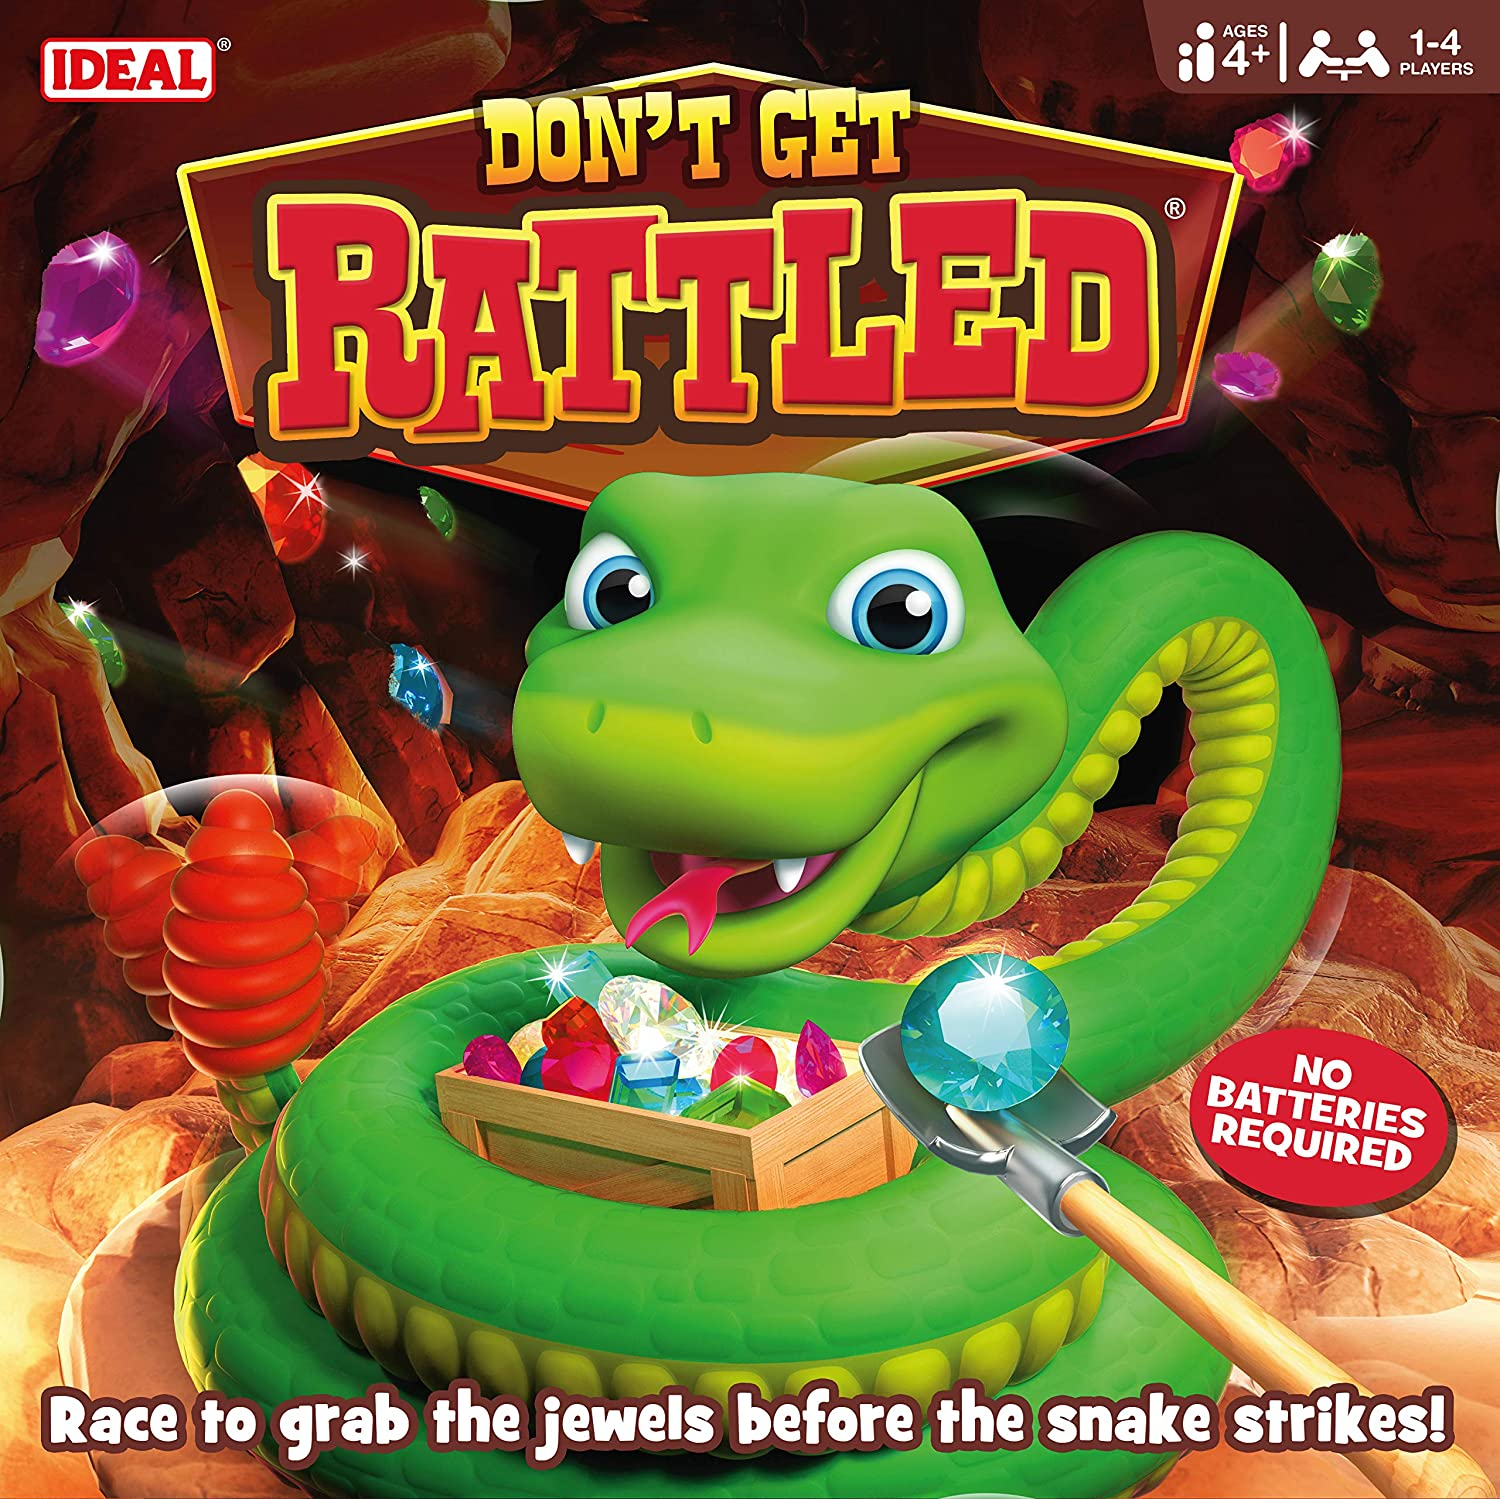 Don't Get Rattled Action Game